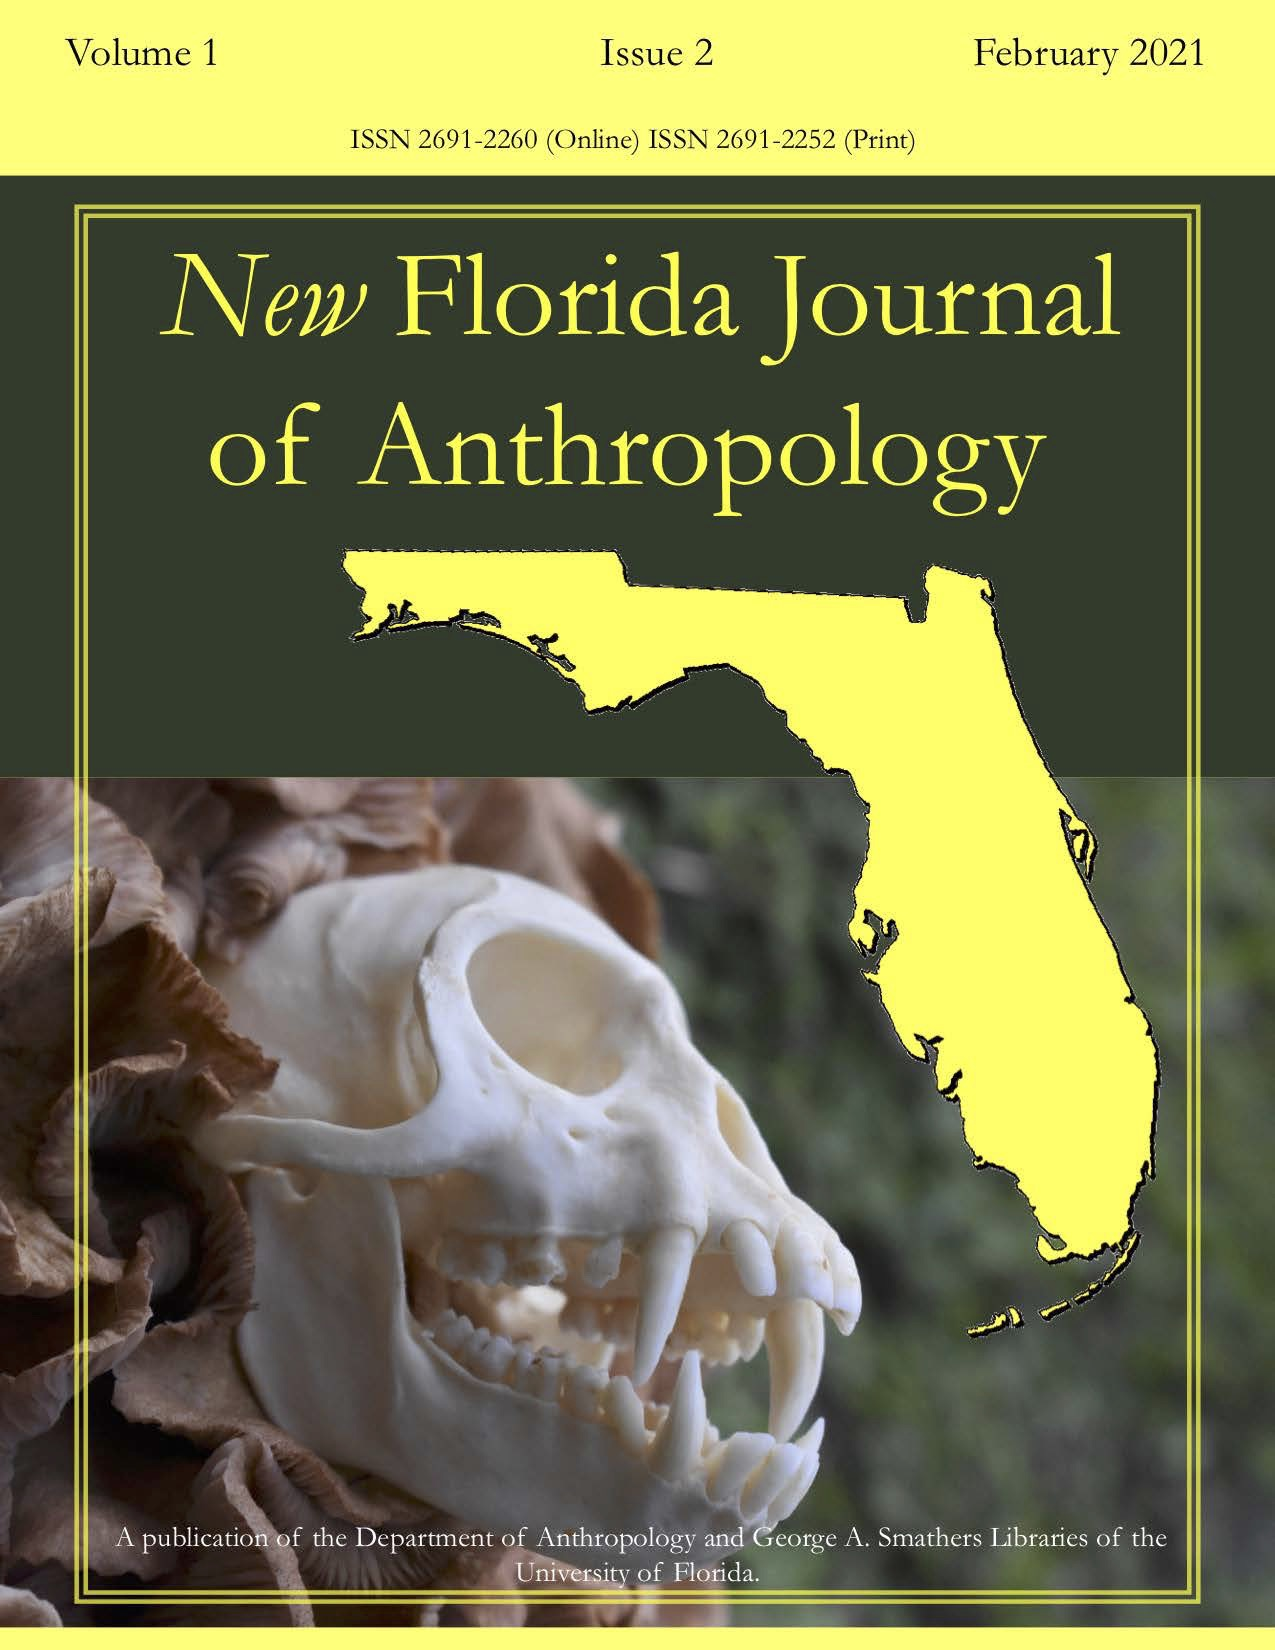 NFJA Florida outline logo in yellow overlaying an image of a male crab-eating macaque (Macaca fascicularis) skull against a backdrop of Armillaria mushrooms.